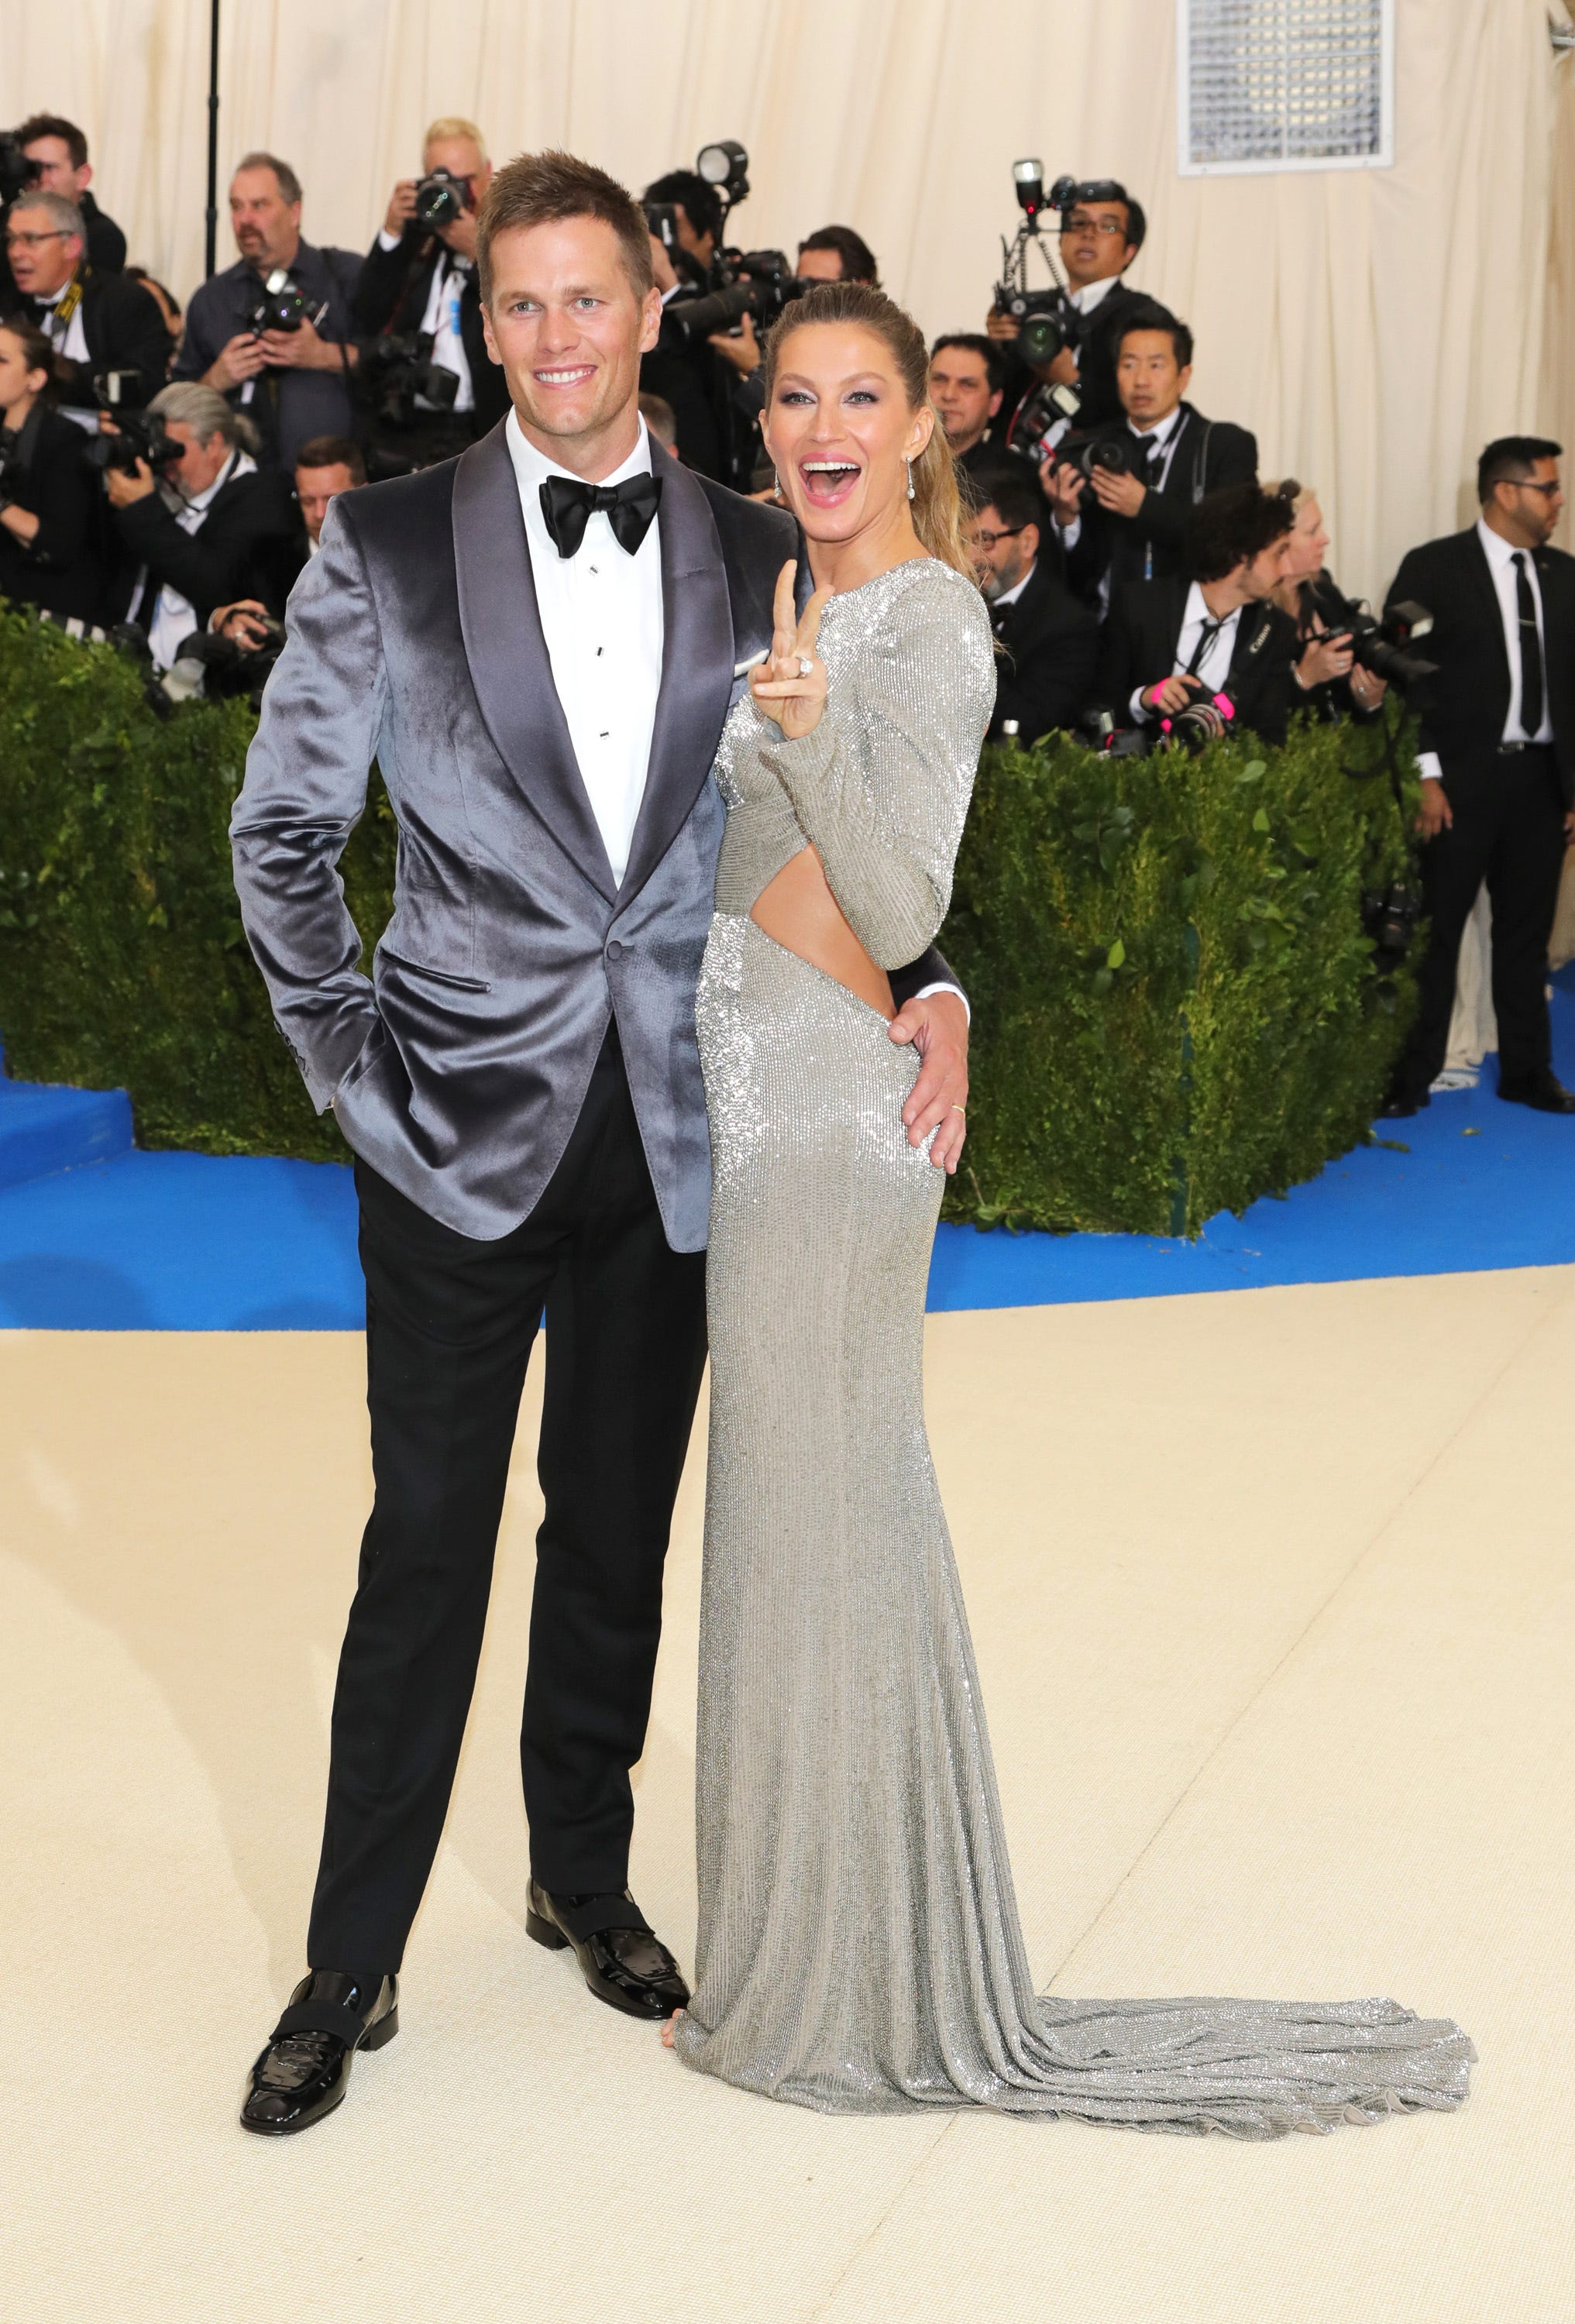 These Couples Were Too Cute At The Met Gala Red Carpet